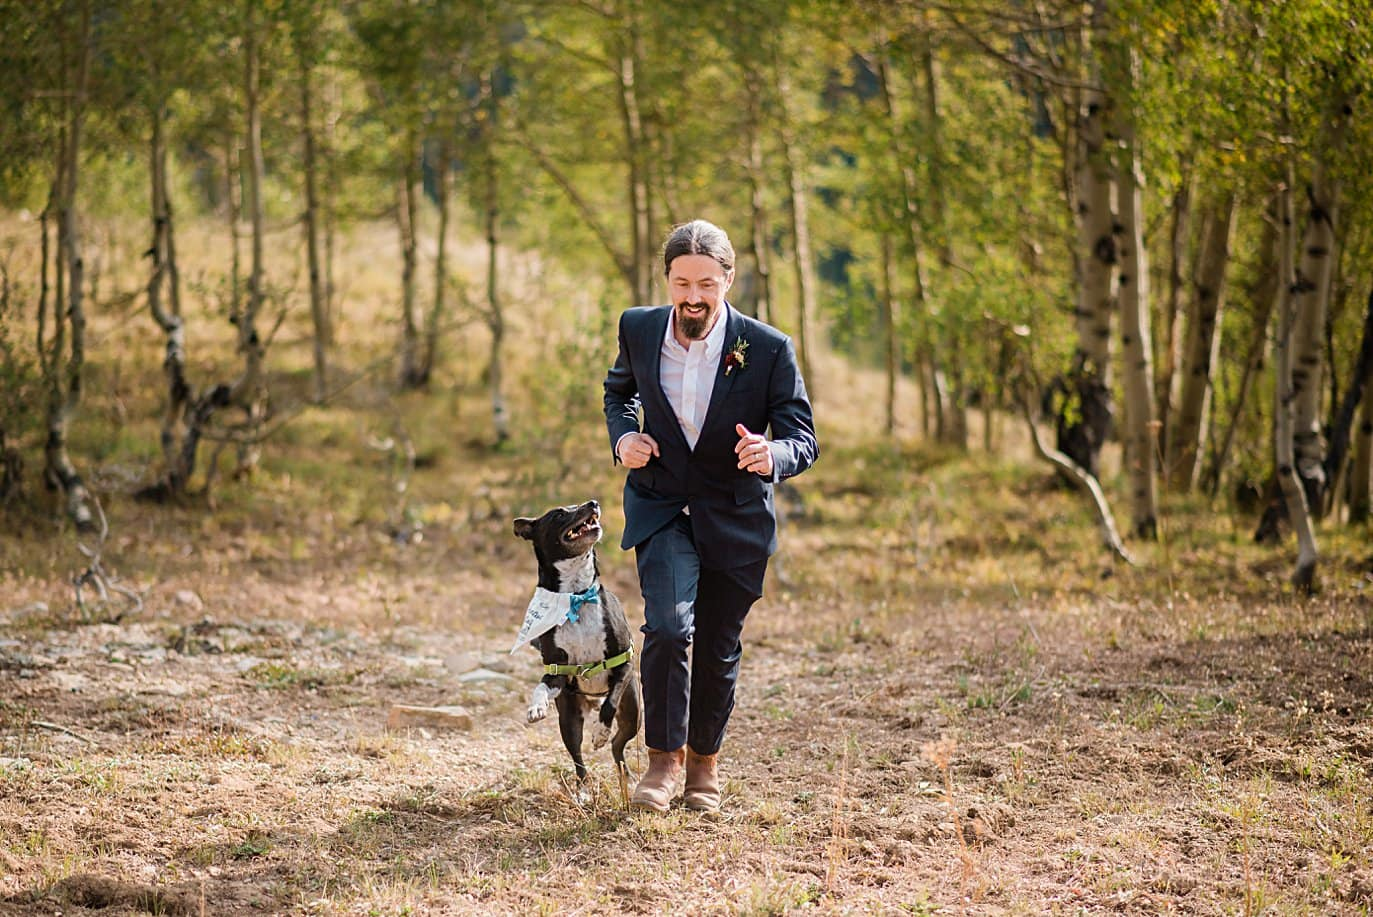 groom runs with dog on wedding day in meadow in Colorado mountain by Denver wedding photographer Jennie Crate